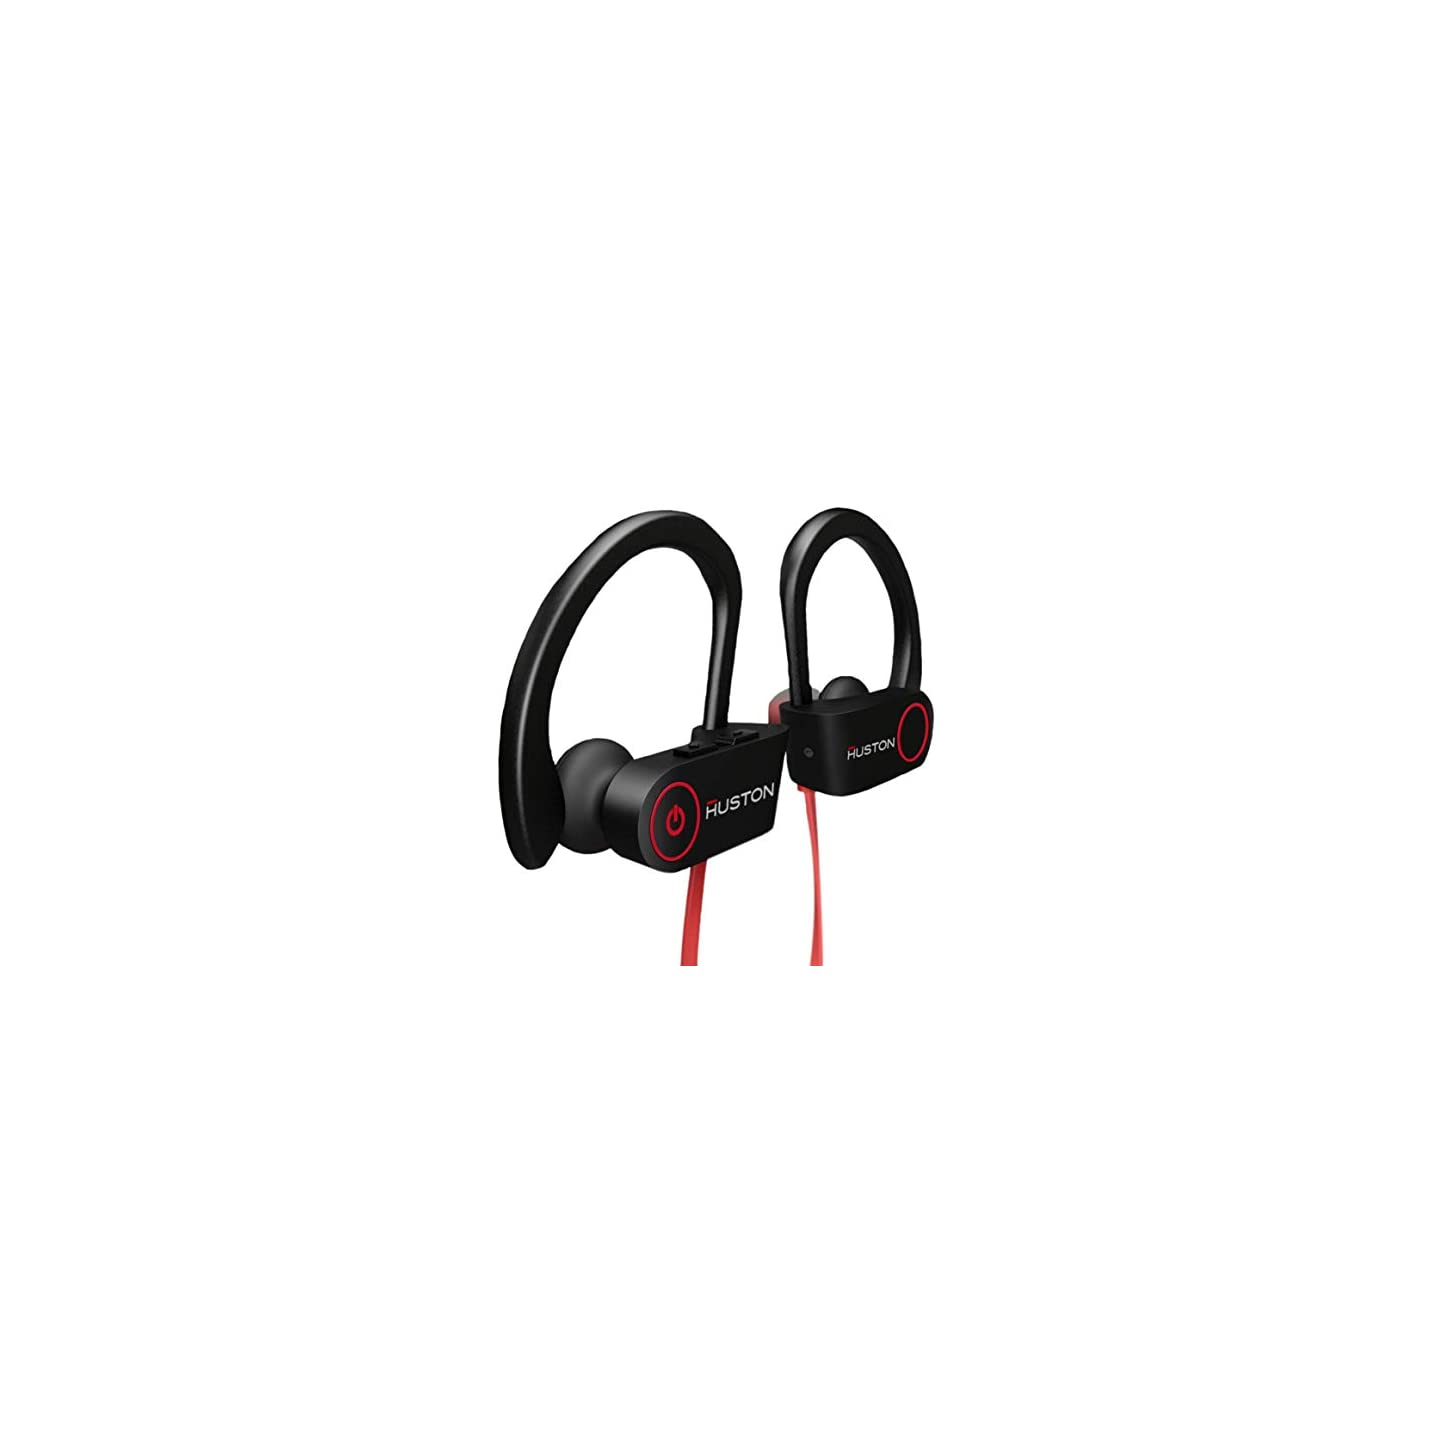 Tesco Huston Bass Max VX100 Sports Bluetooth in-Ear Headphones